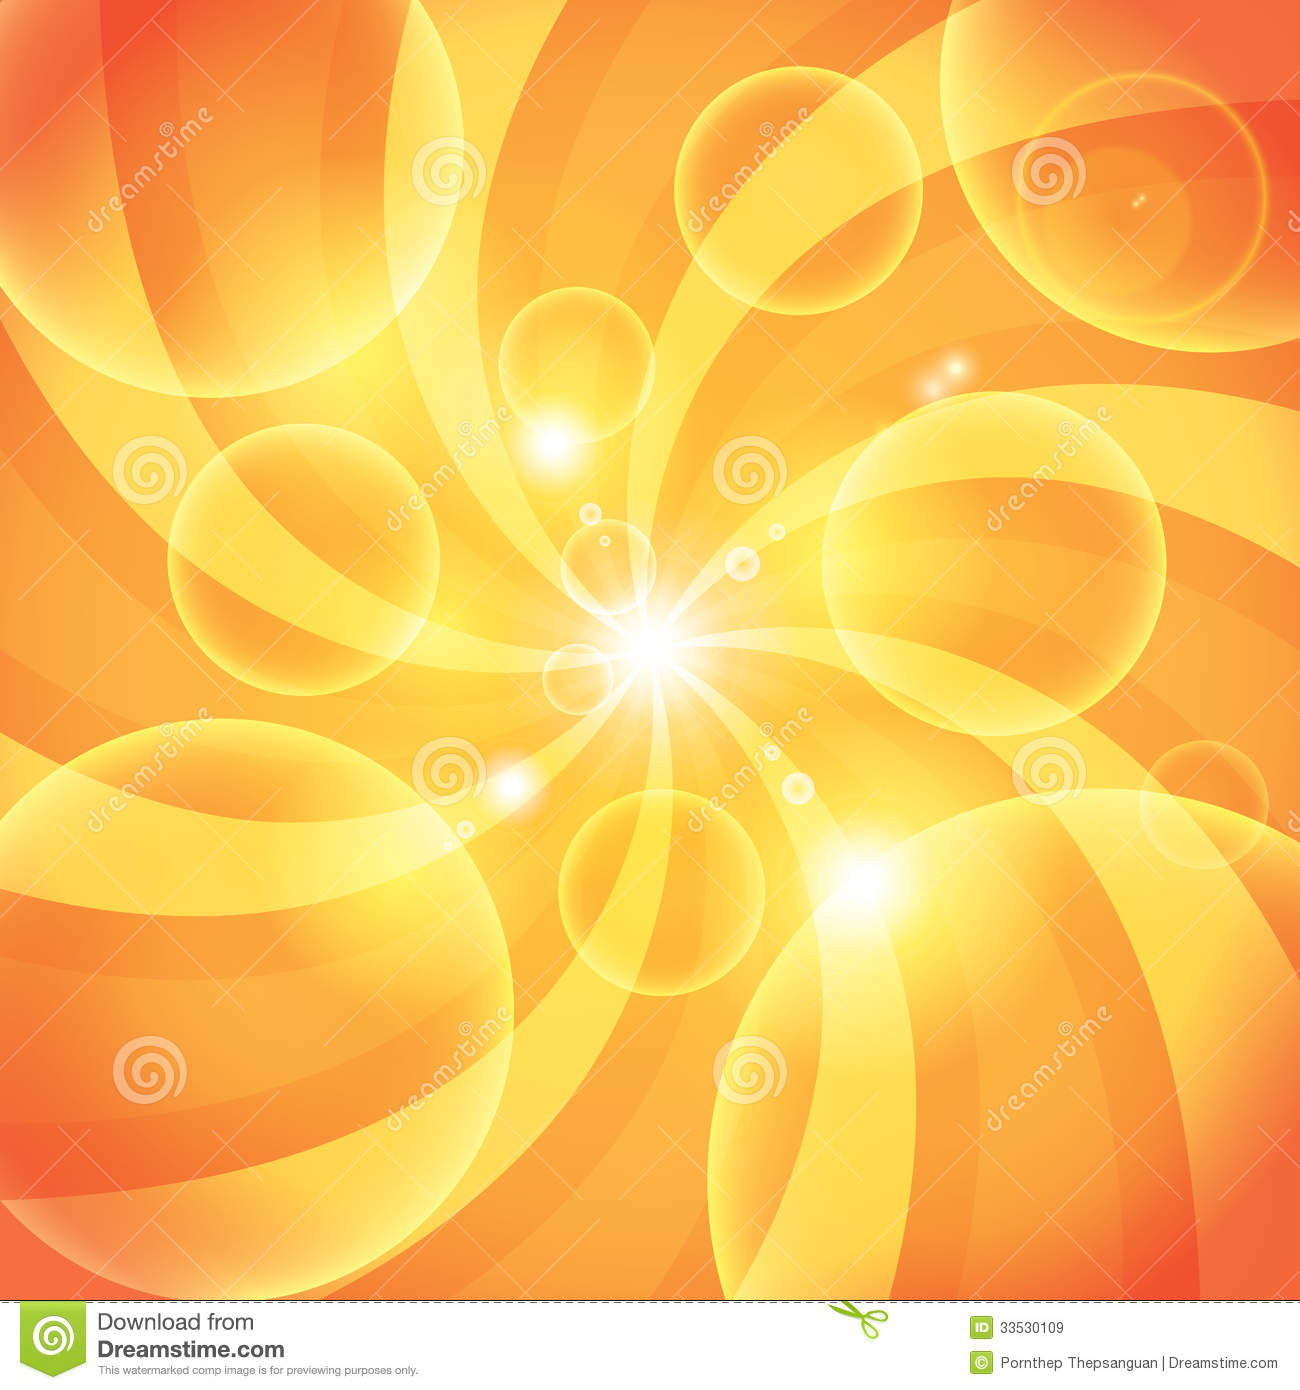 Abstract Orange Sun Light Background Stock Vector - Image ...